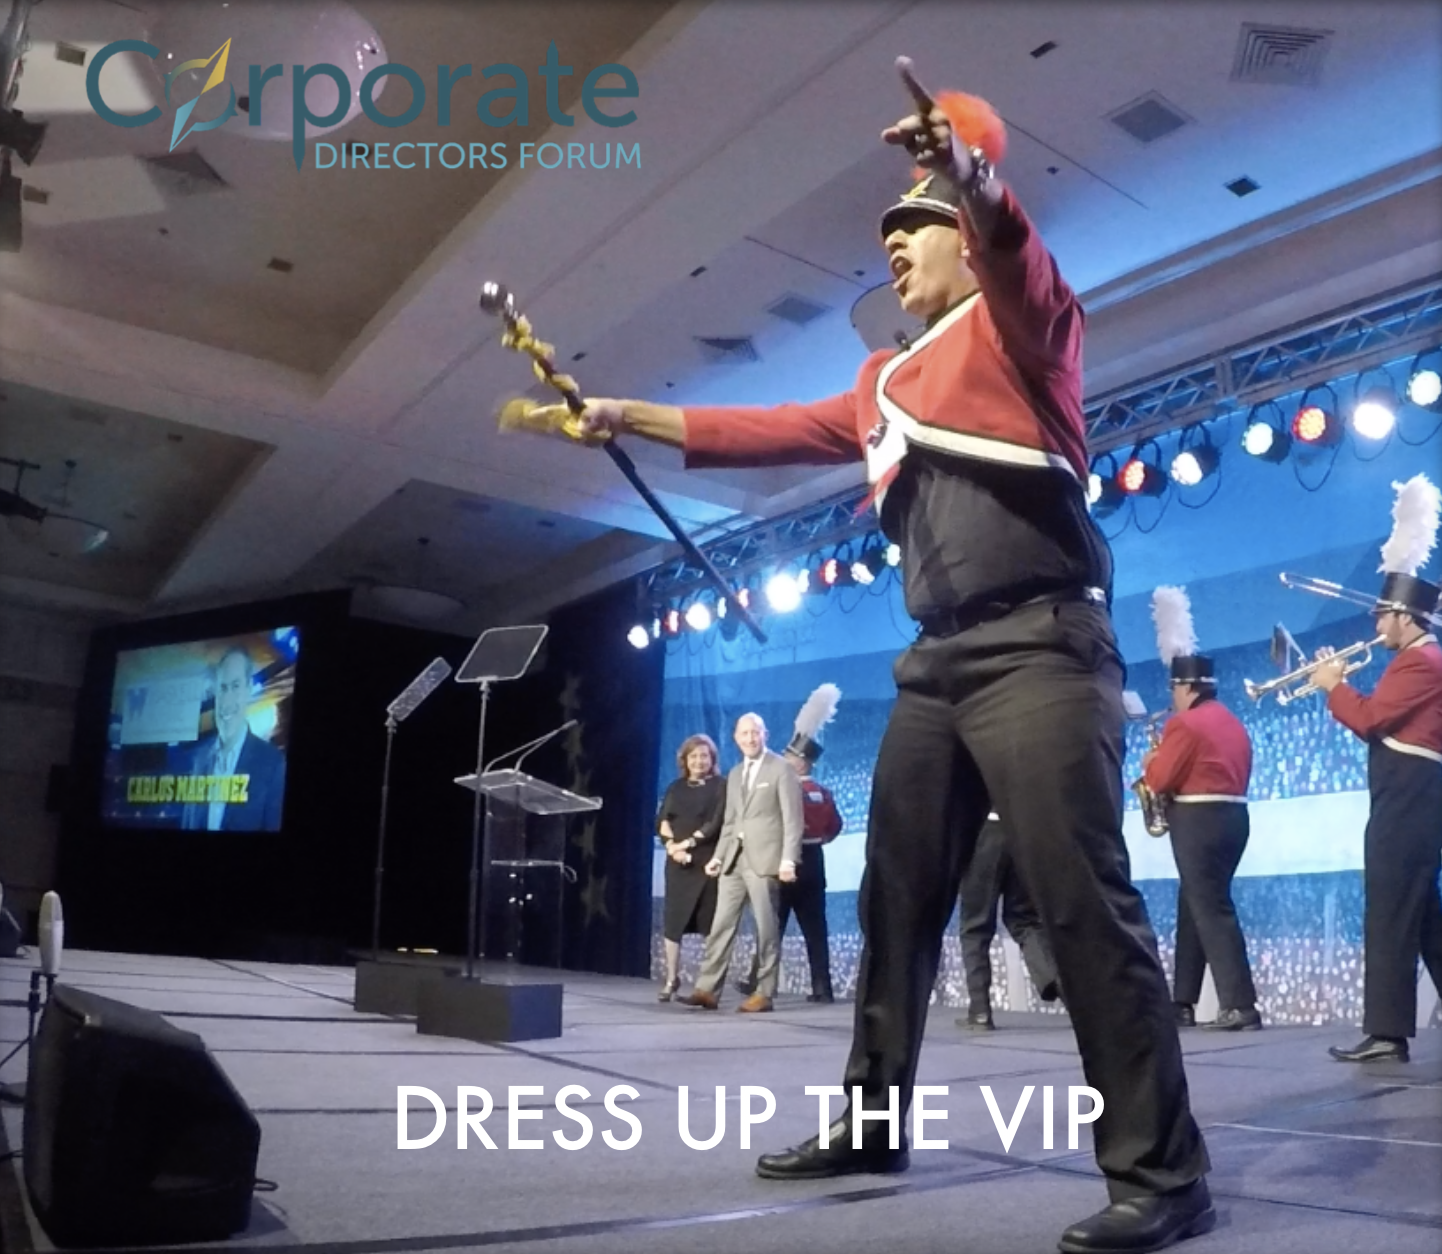 Dress up the VIP